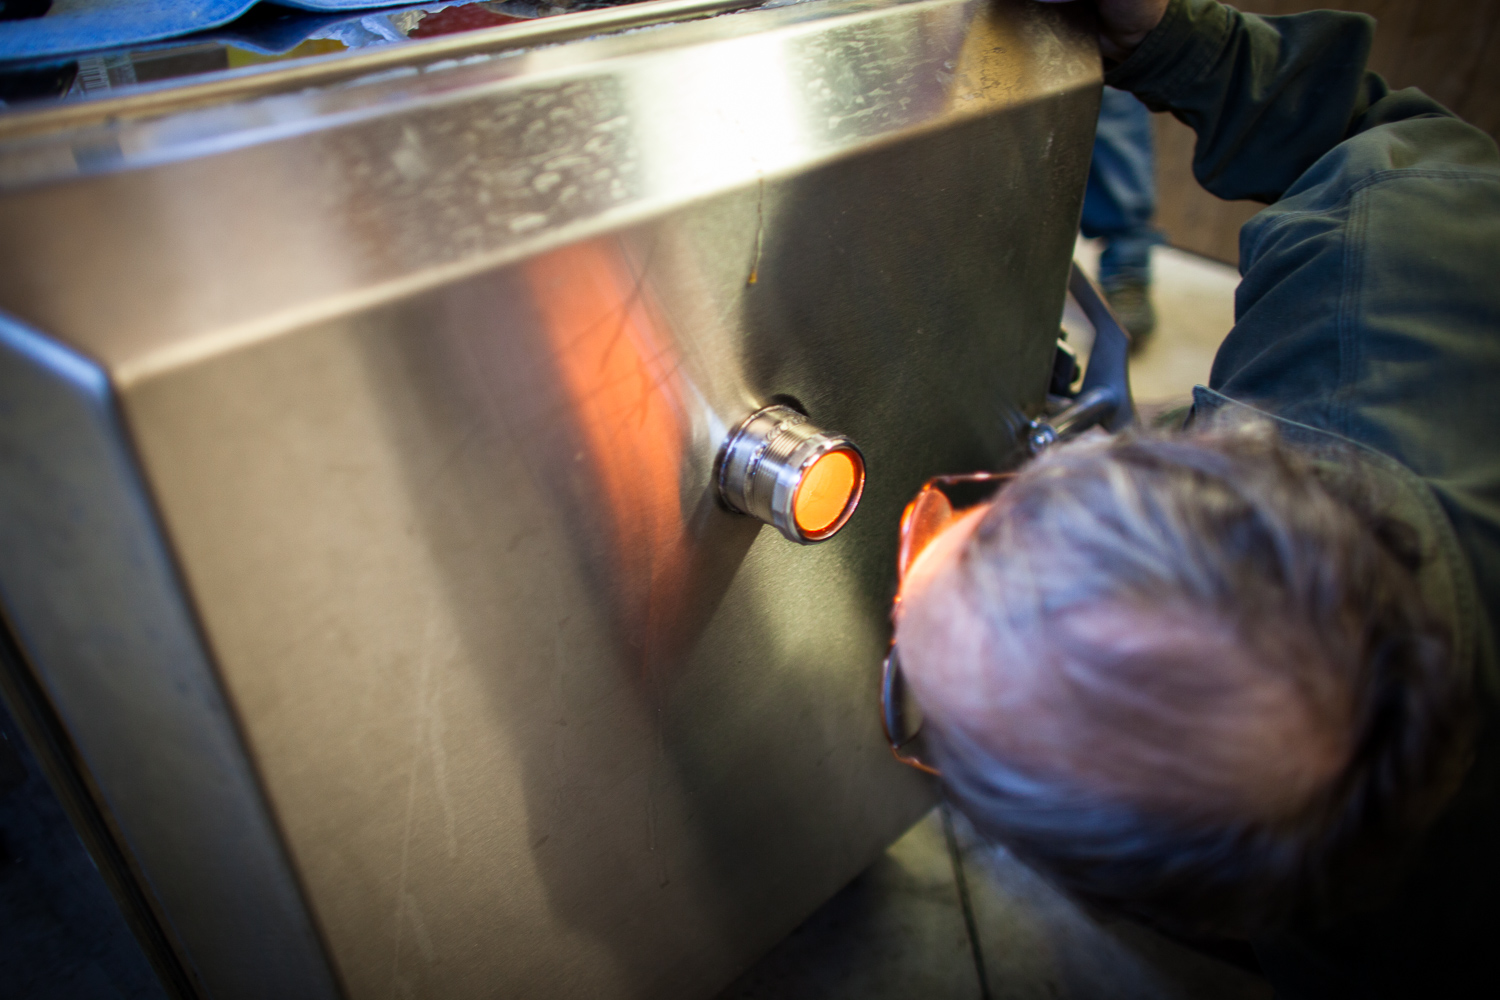 Man peers into a pellet stove while sugaring. By Vermont photographer Monica Donovan